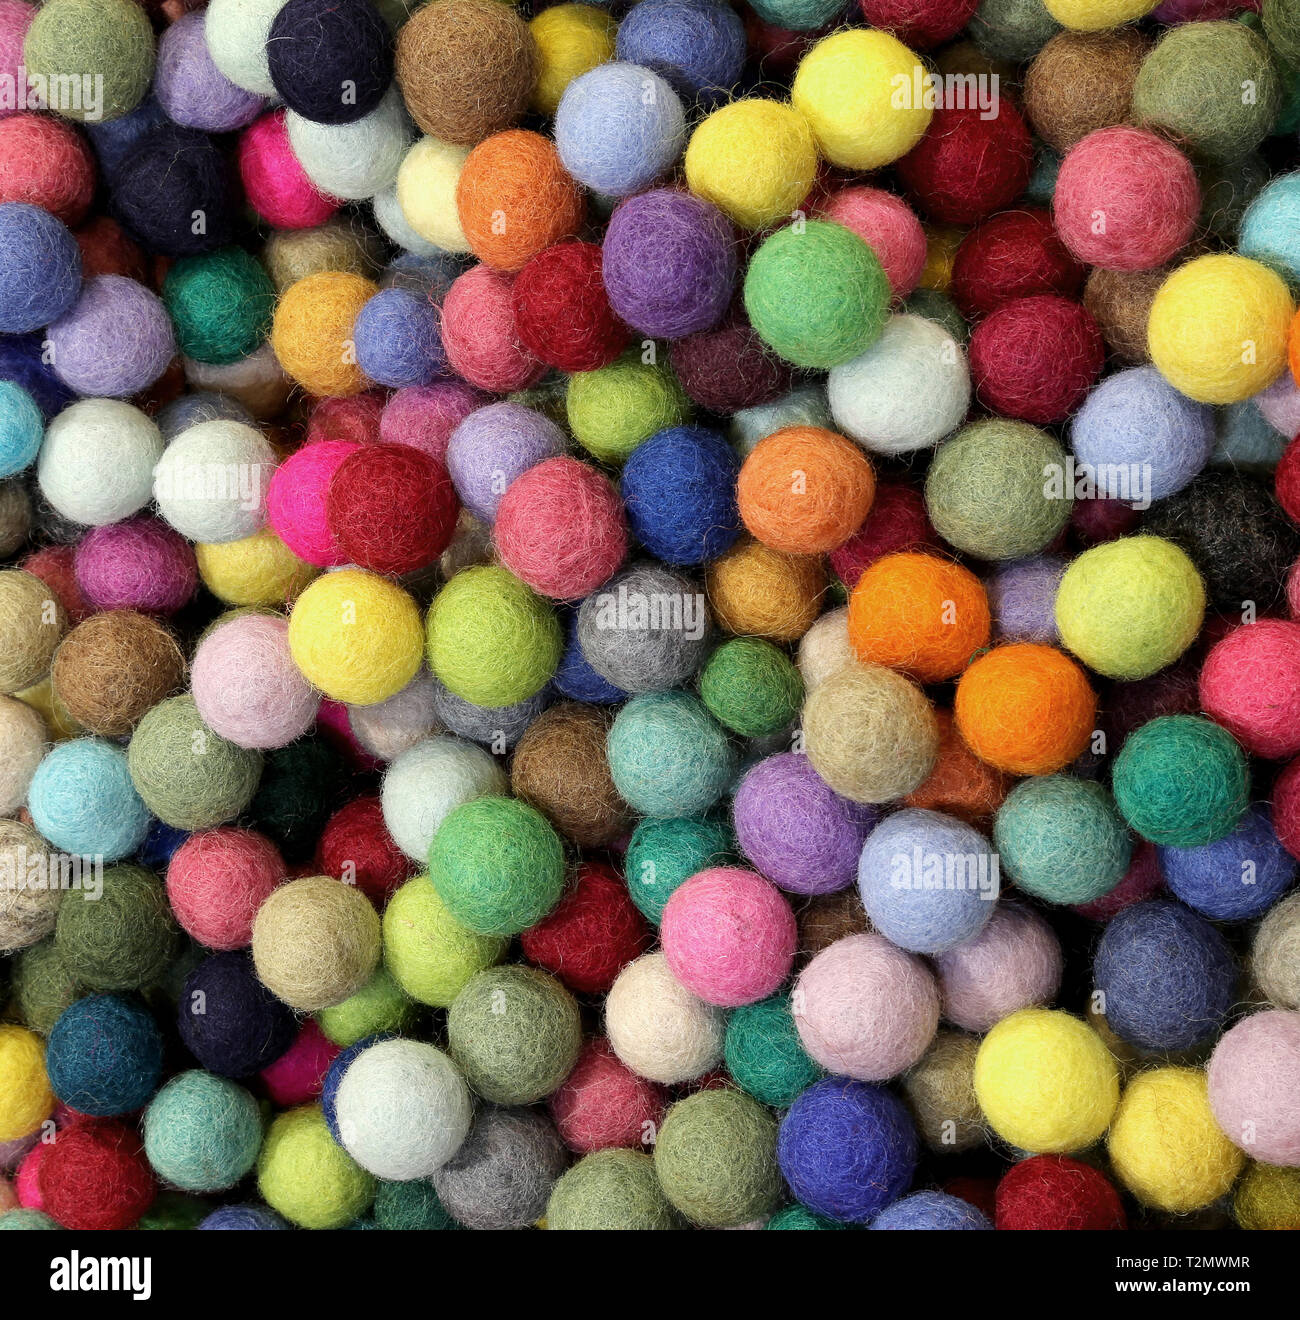 background of many multicolored felt small balls - Stock Image